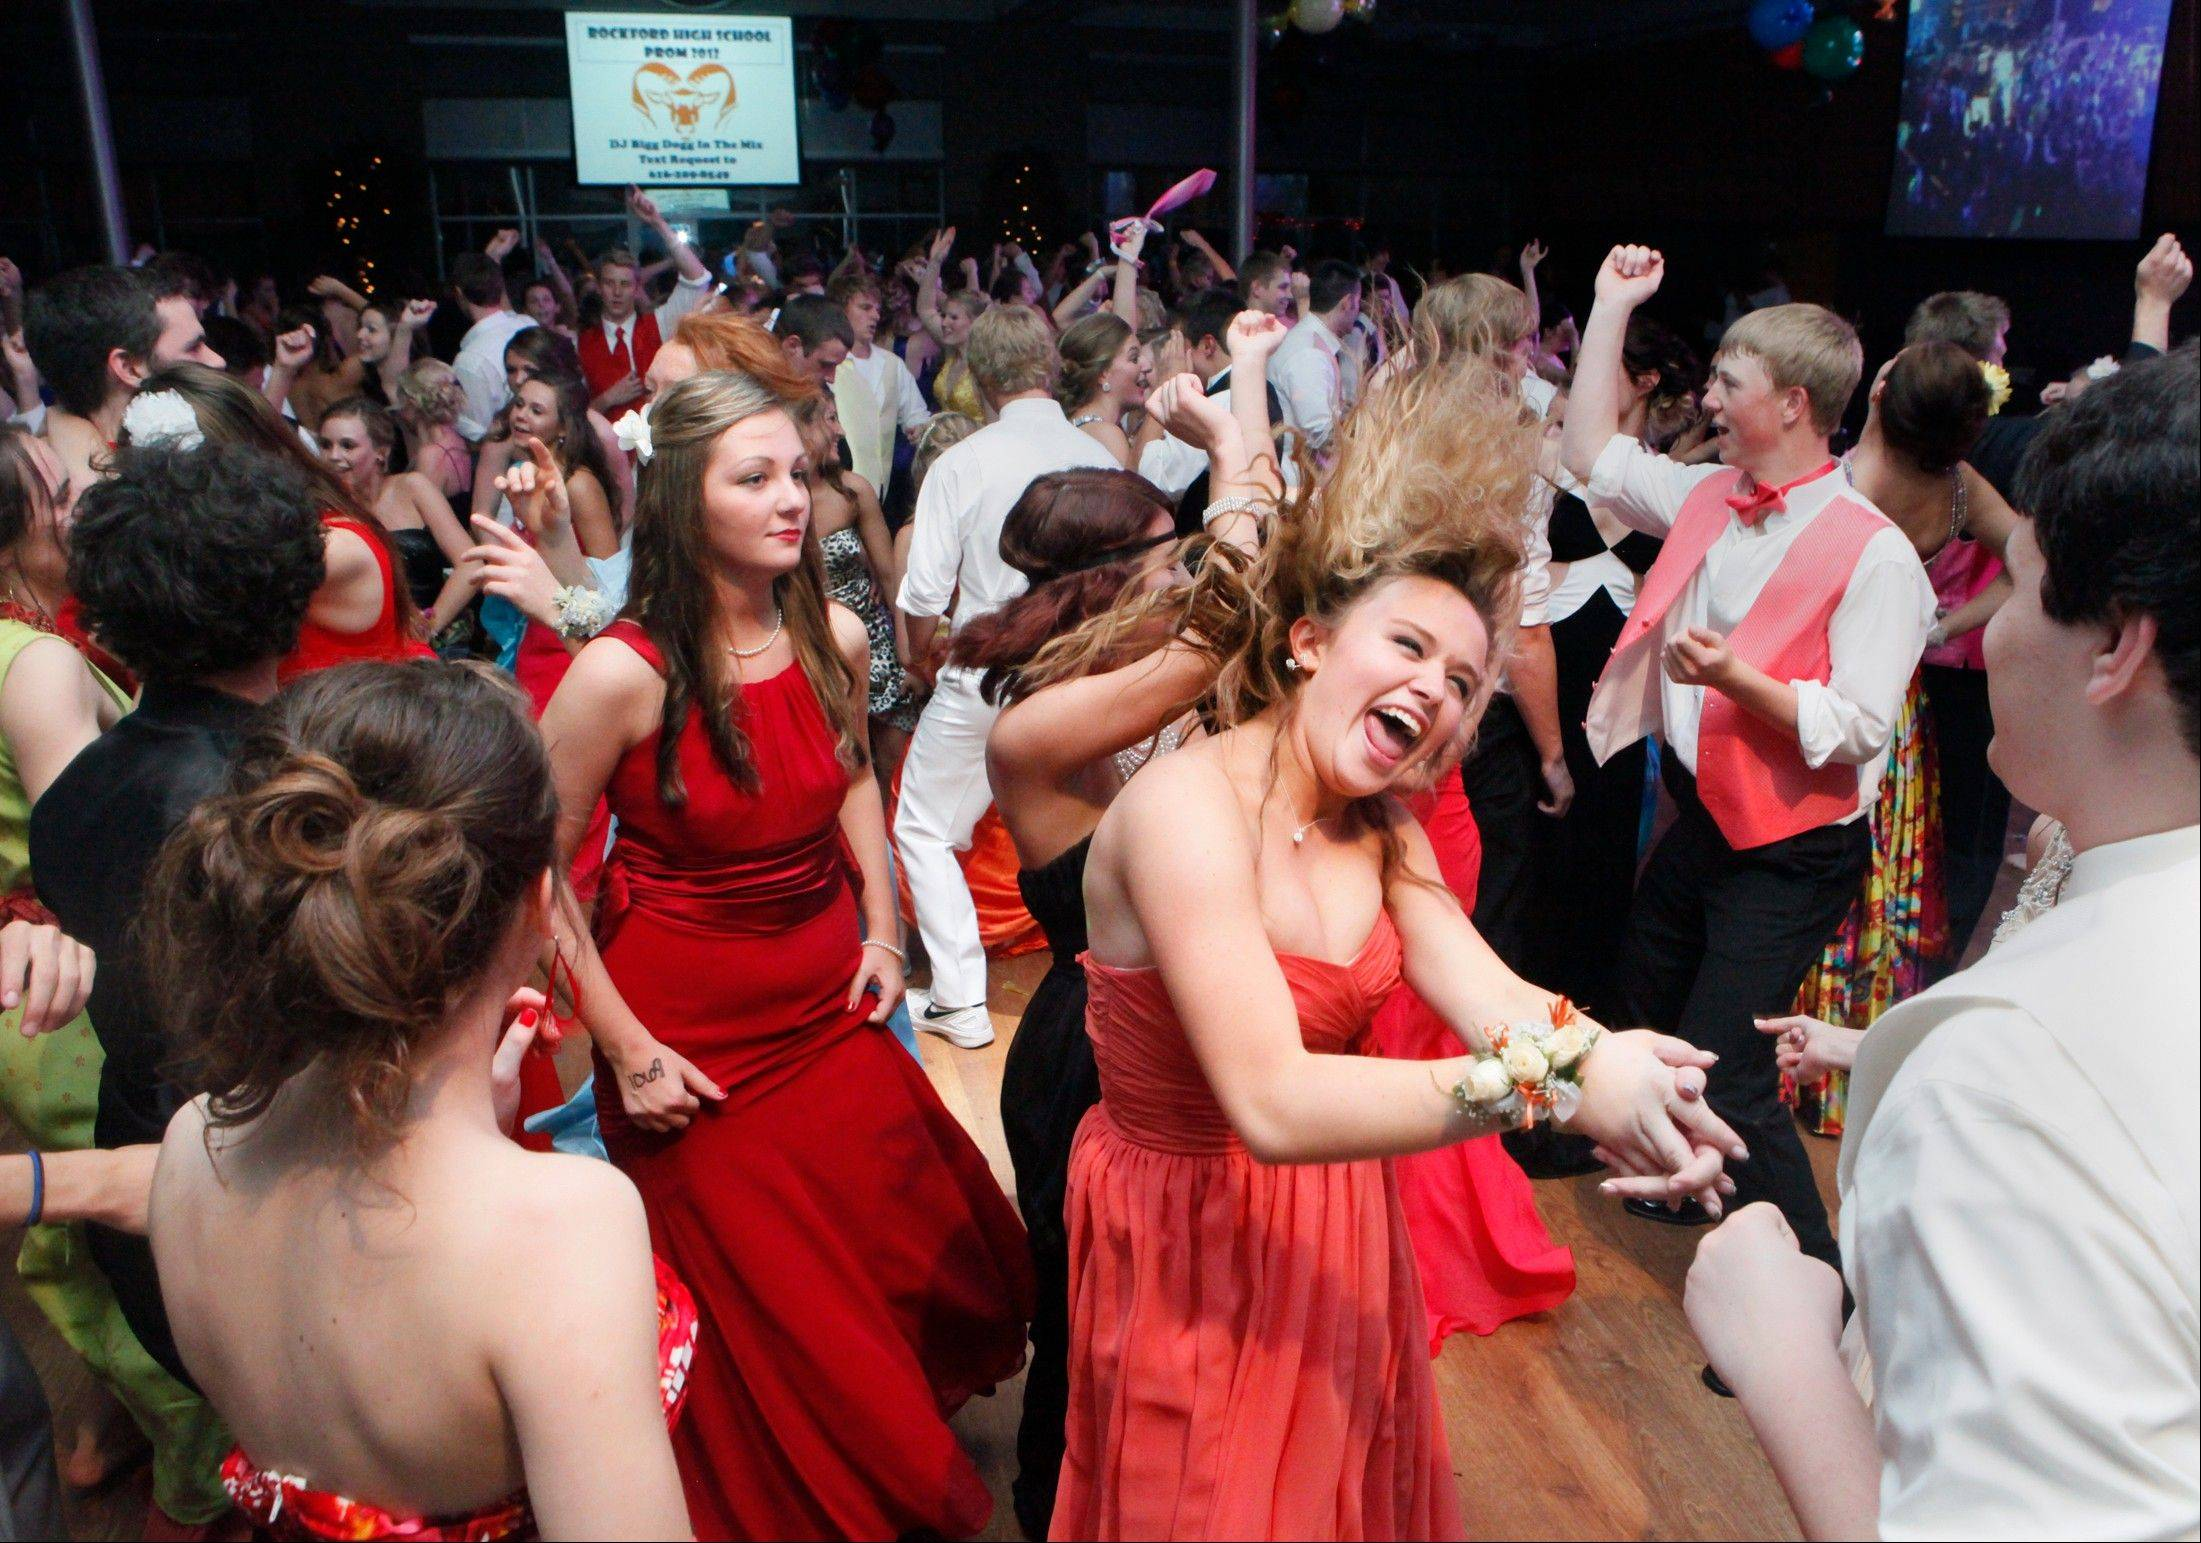 Rockford High School students dance at The Pinnacle Center during their prom in Hudsonville, Mich. Prom spending is expected to rise in 2013 to an average $1,139.